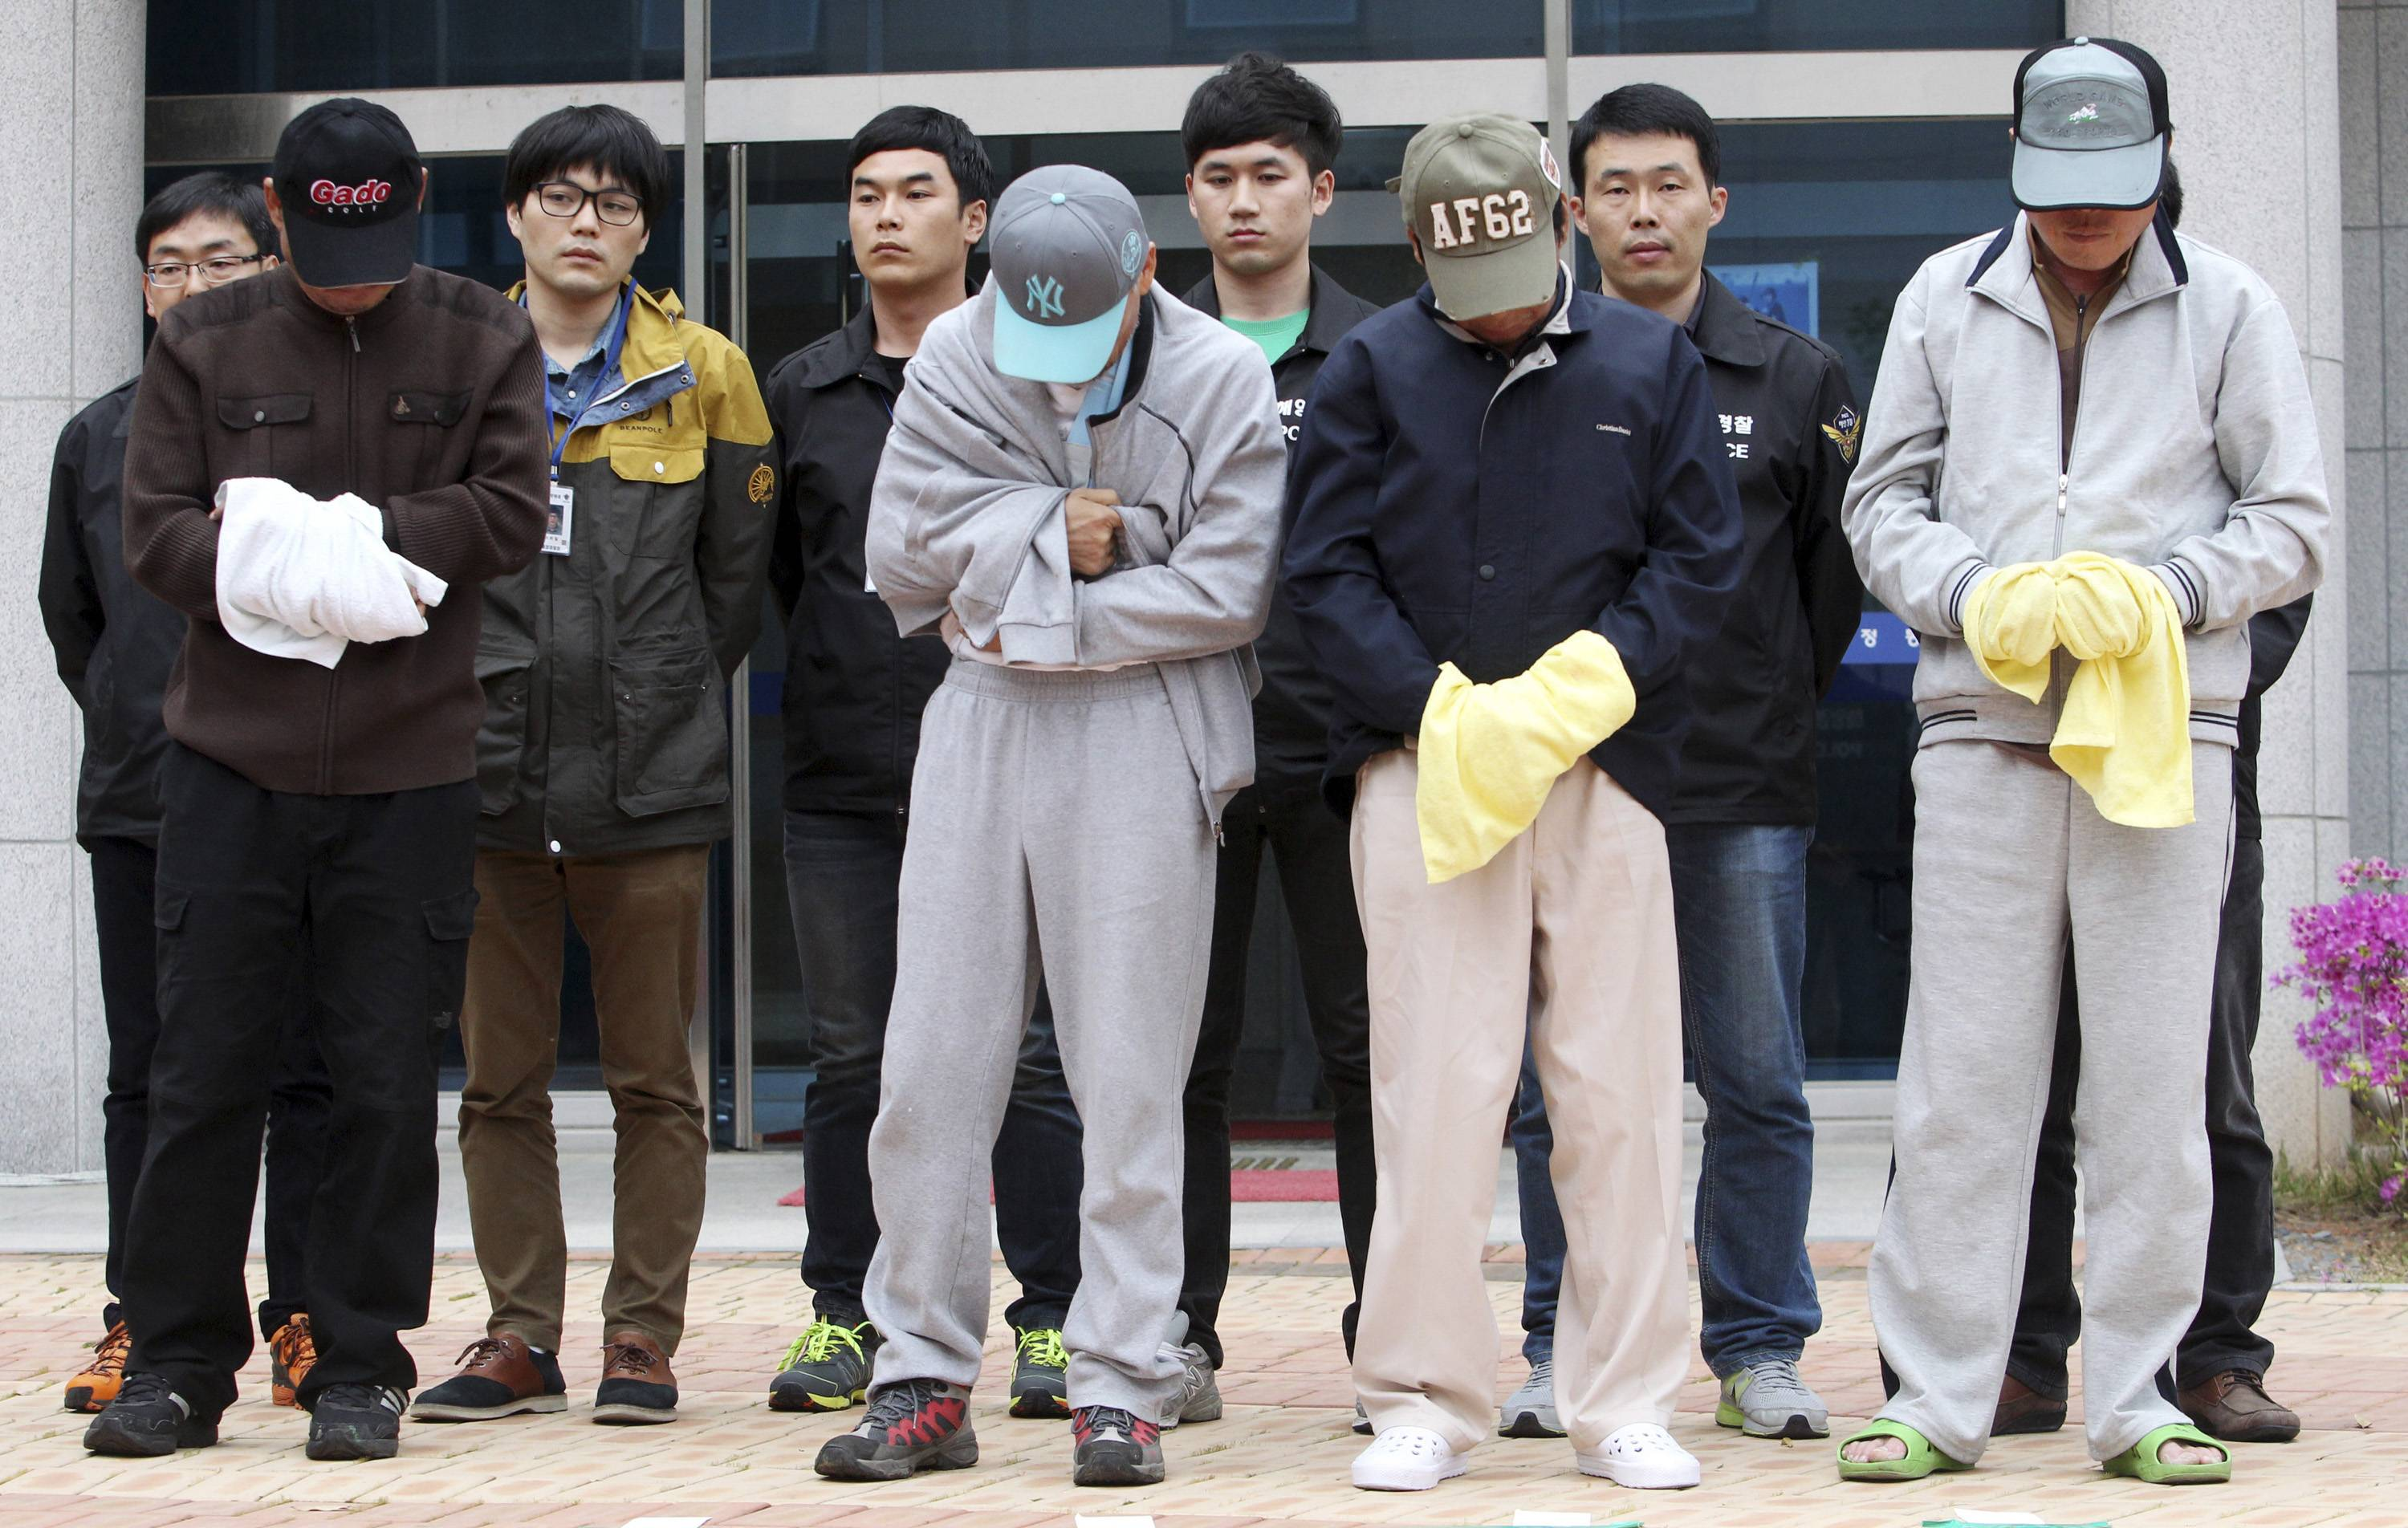 Crew members of sunken ferry Sewol prepare to leave a court which issued their arrest warrant, in Mokpo, South Korea, Saturday, April 26, 2014. All 15 people involved in navigating the South Korean ferry that sank and left